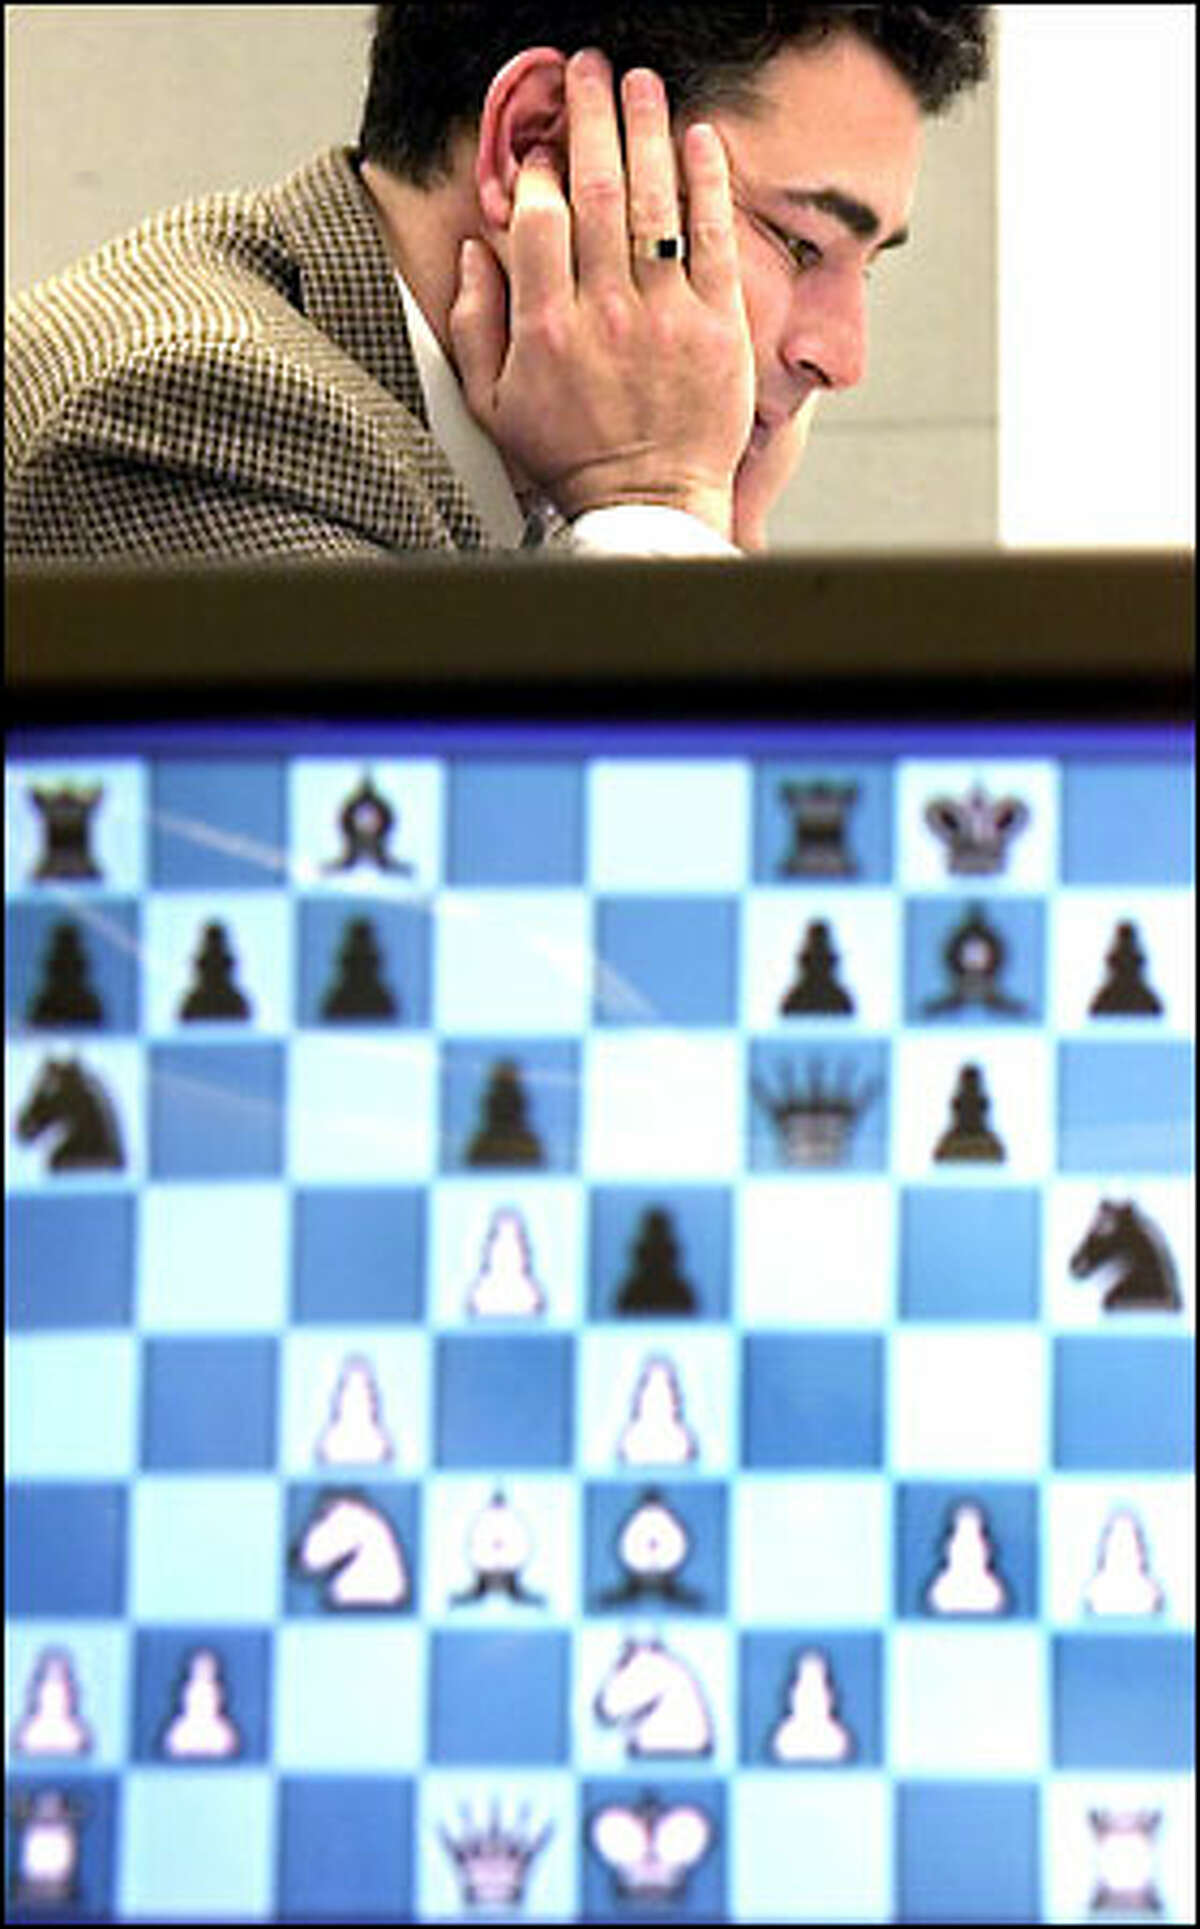 Yasser Seirawan plays in the U.S. Chess Championships. In front is a screen that displays the progress of the game.